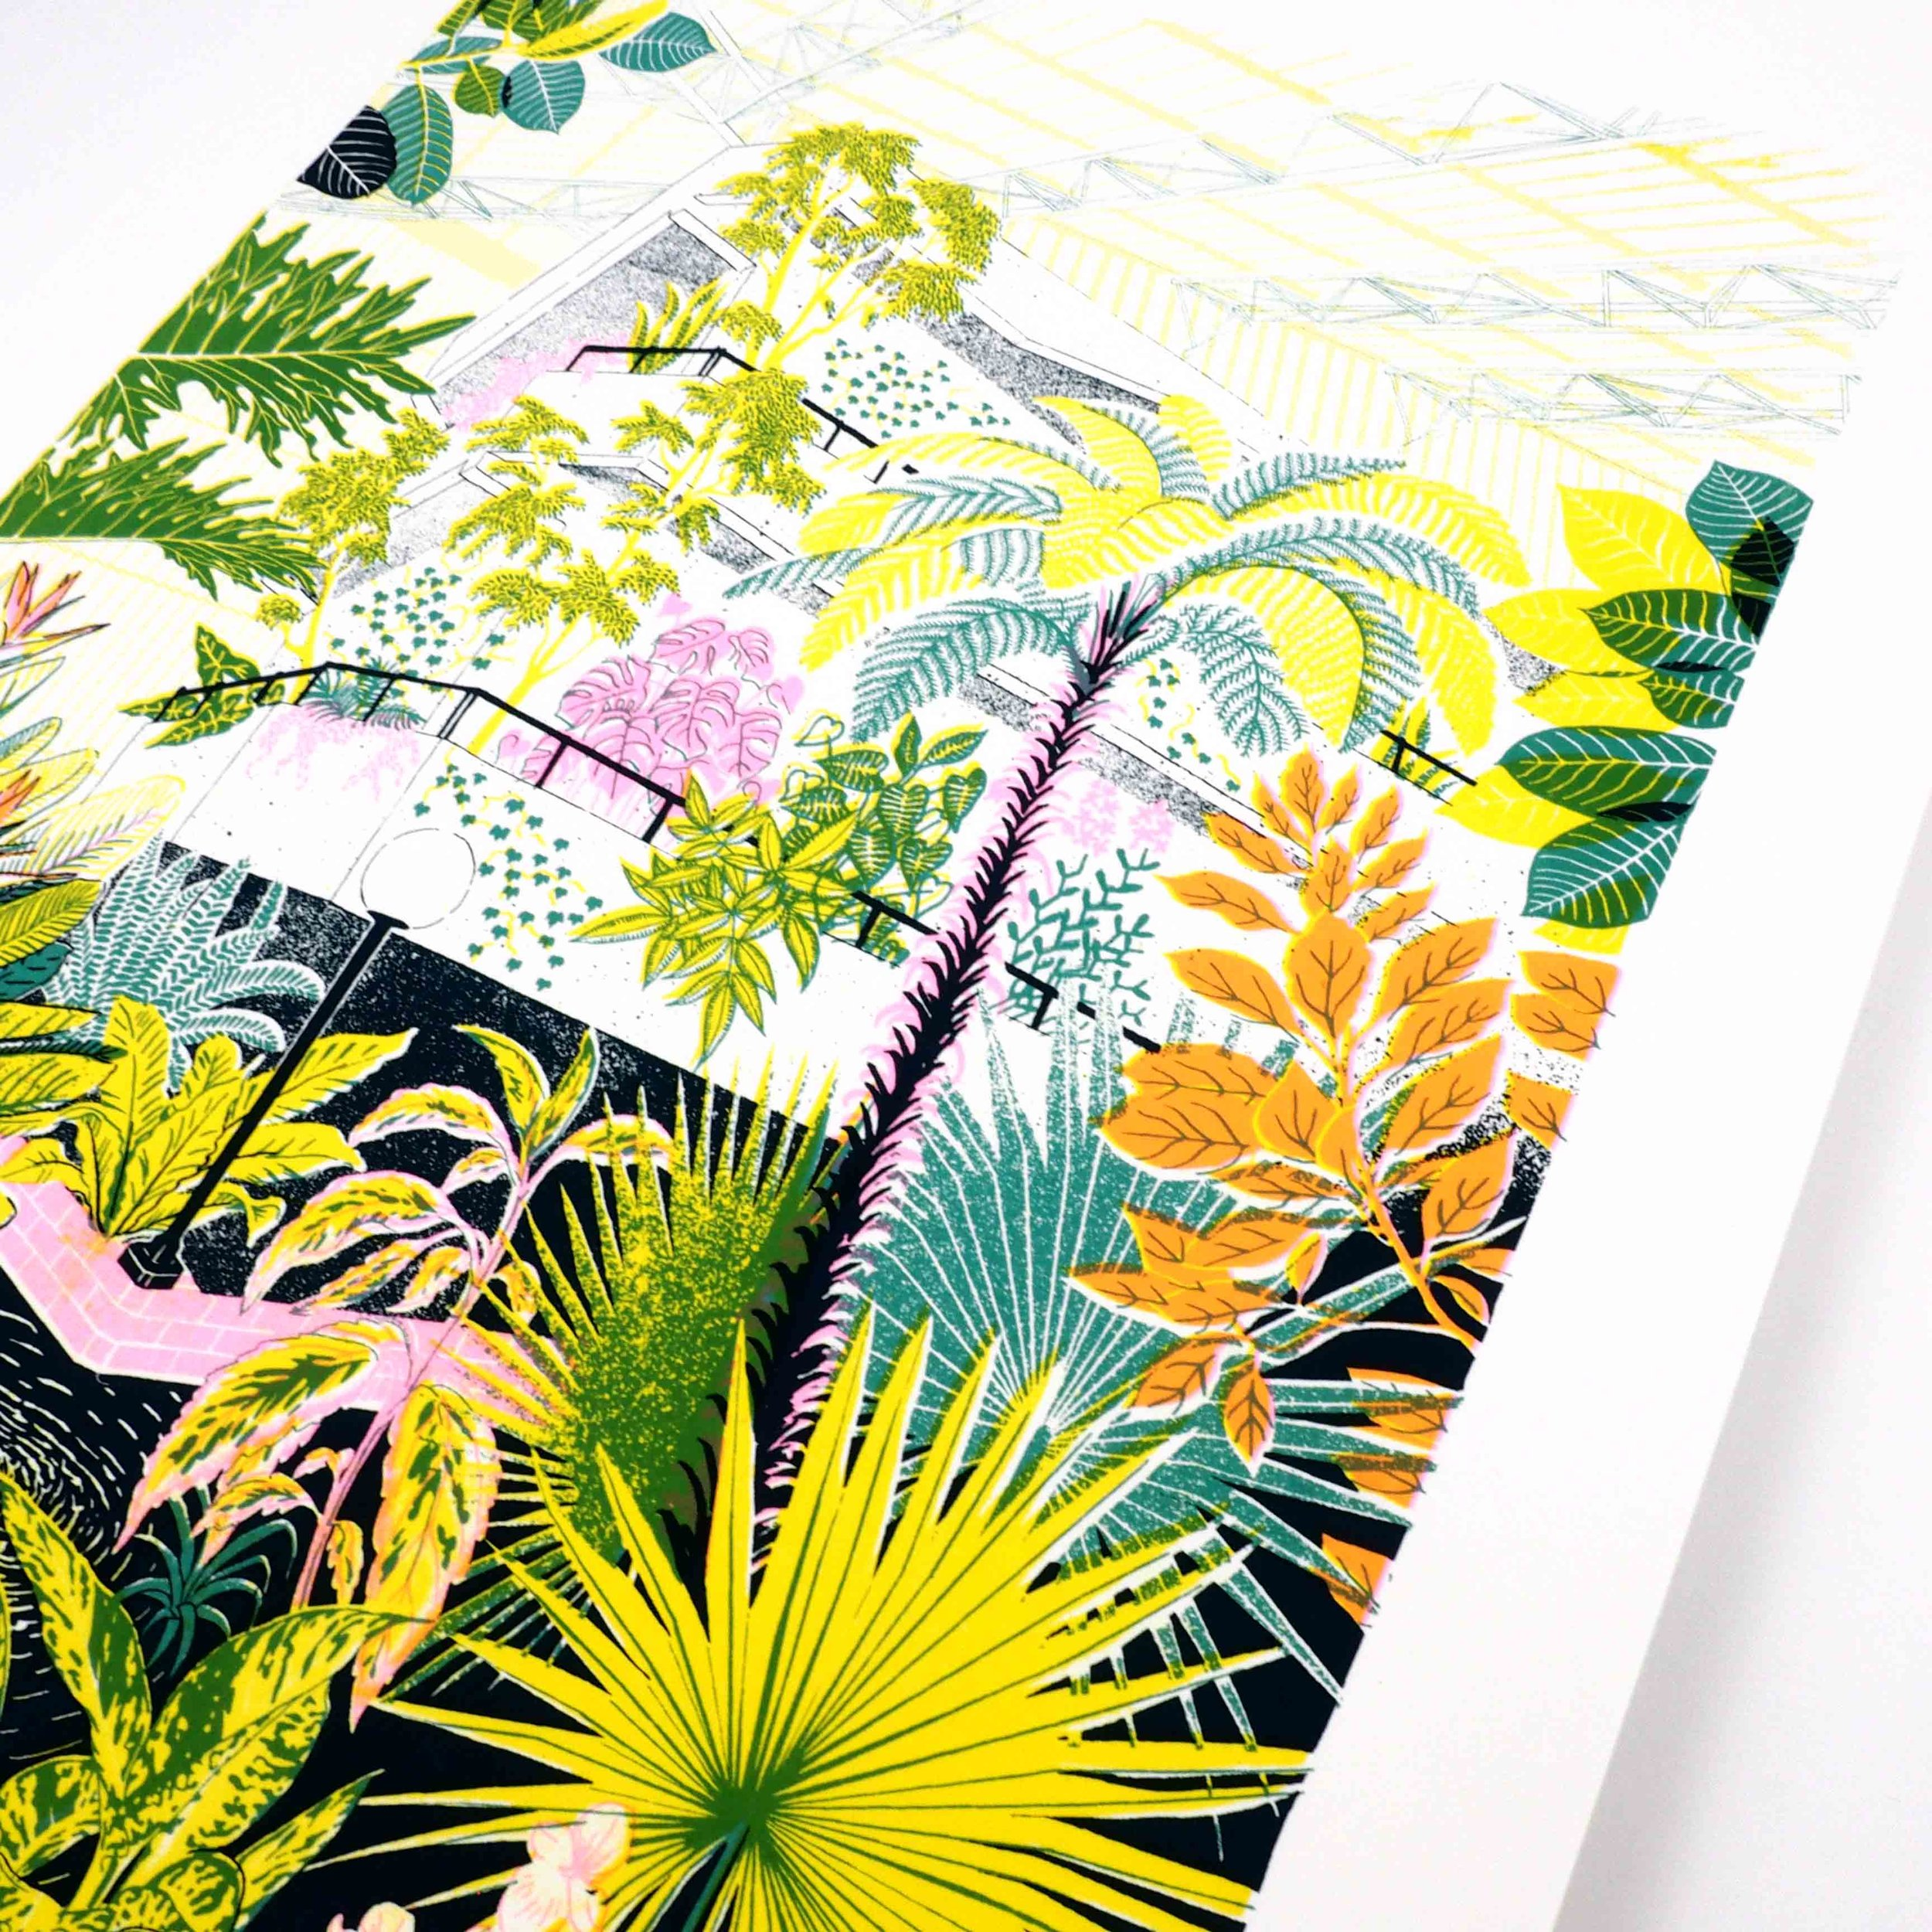 Barbican-Conservatory-Jungle-Screen-Print-2sm.jpg